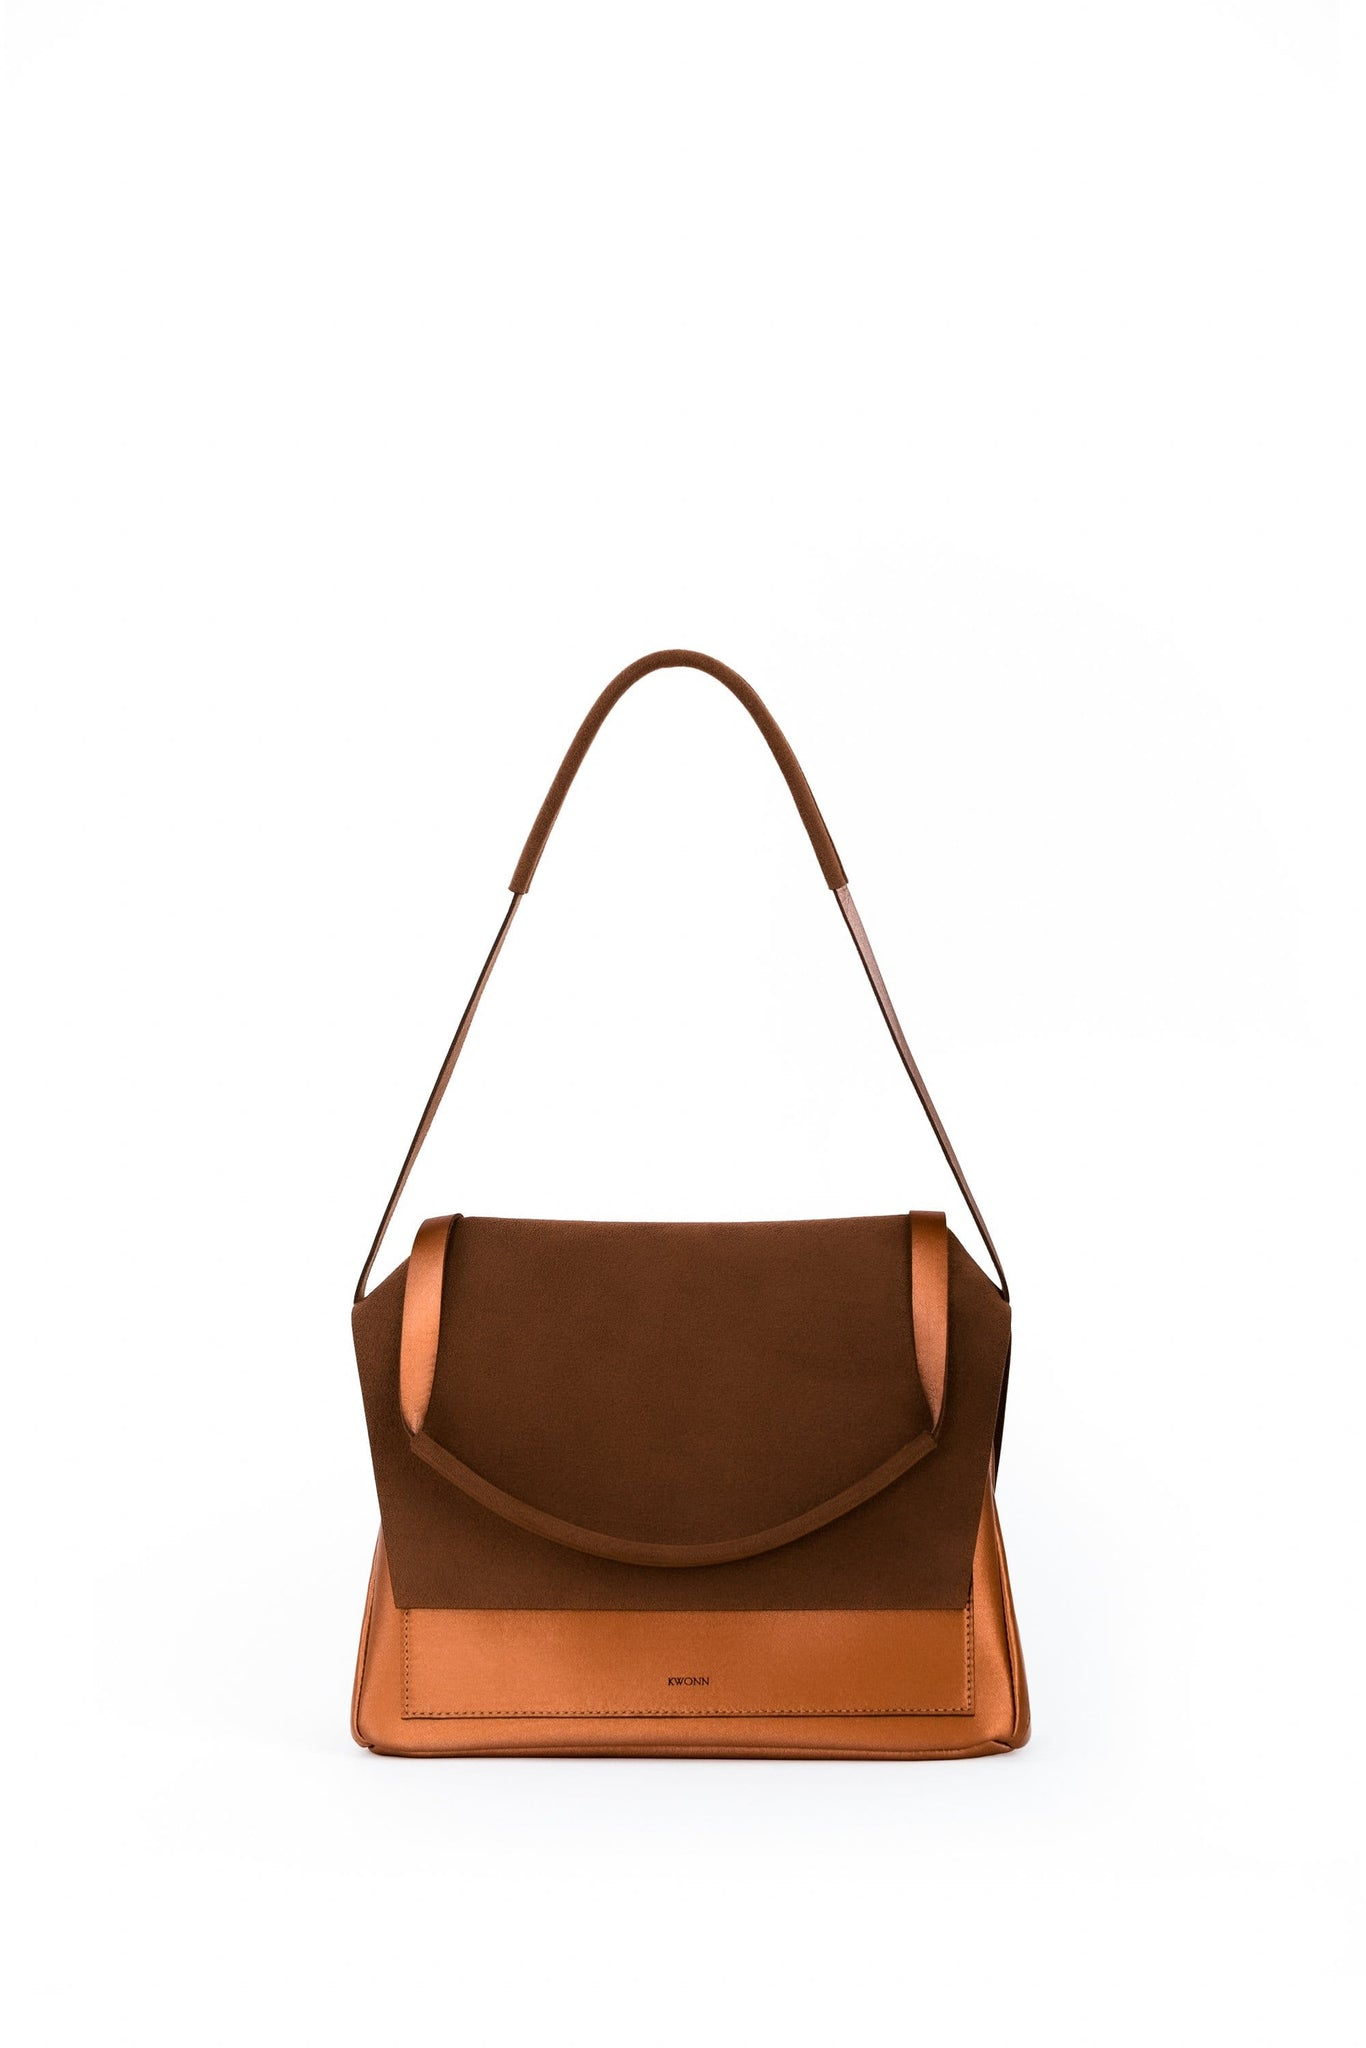 KWONN BAG Copper Crossbody vegan bags luxury bags handbags